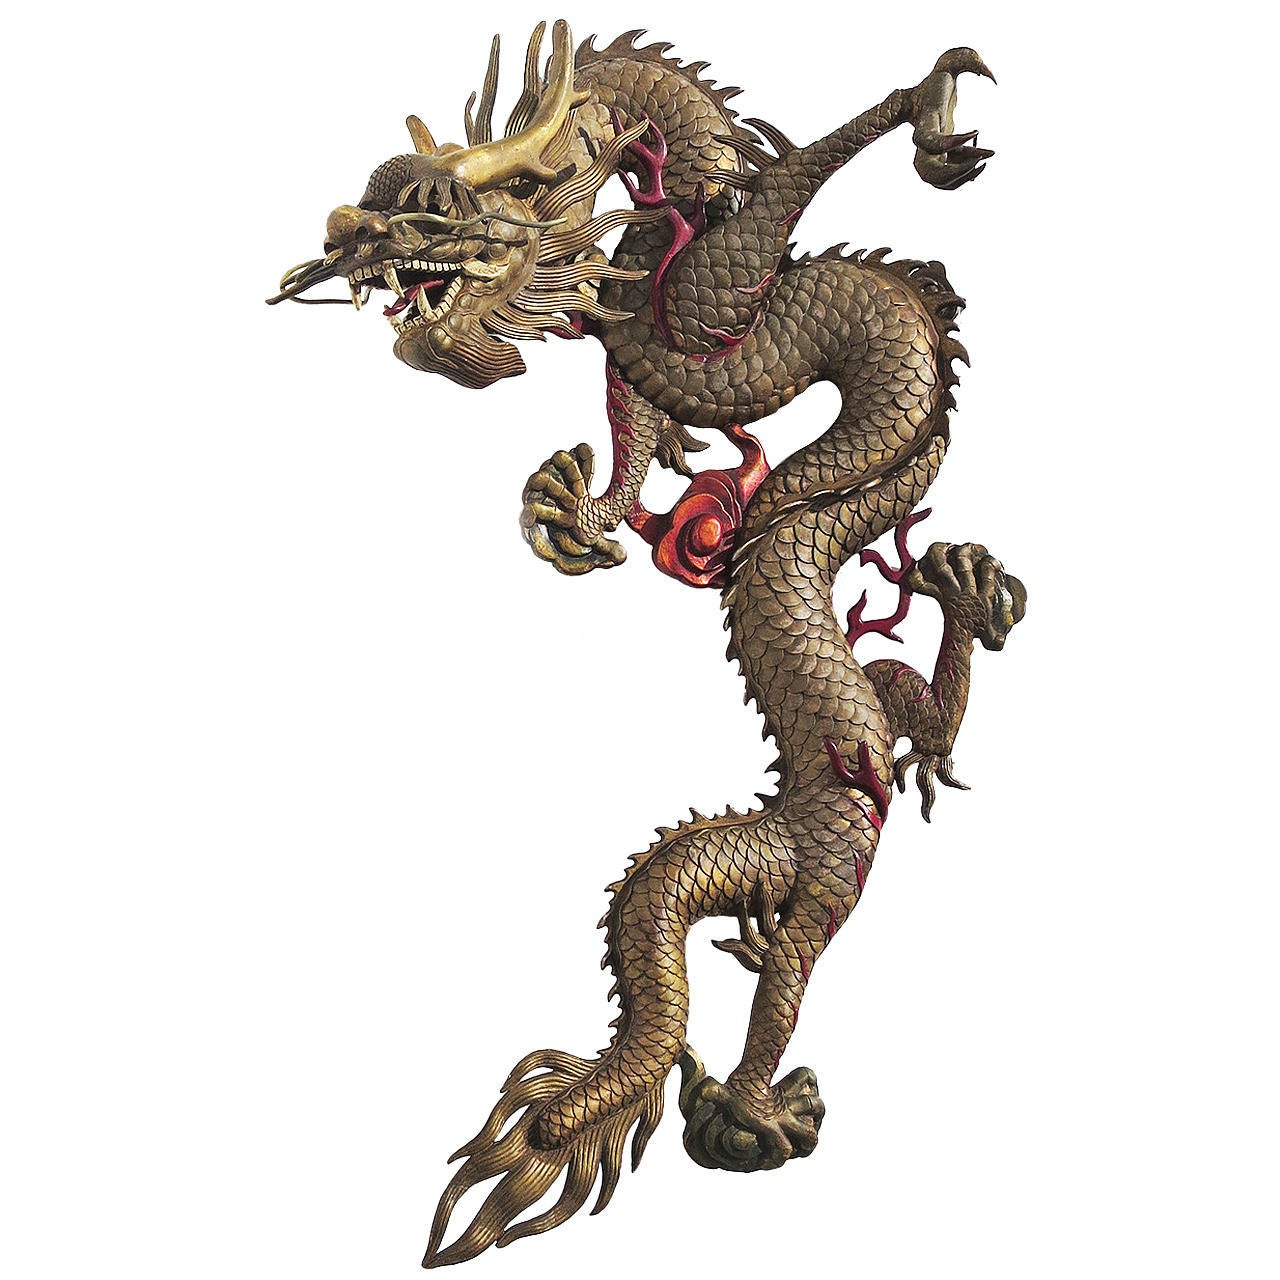 Grand Scale Carved Wooden Dragon Wall Hanging Sculpture For